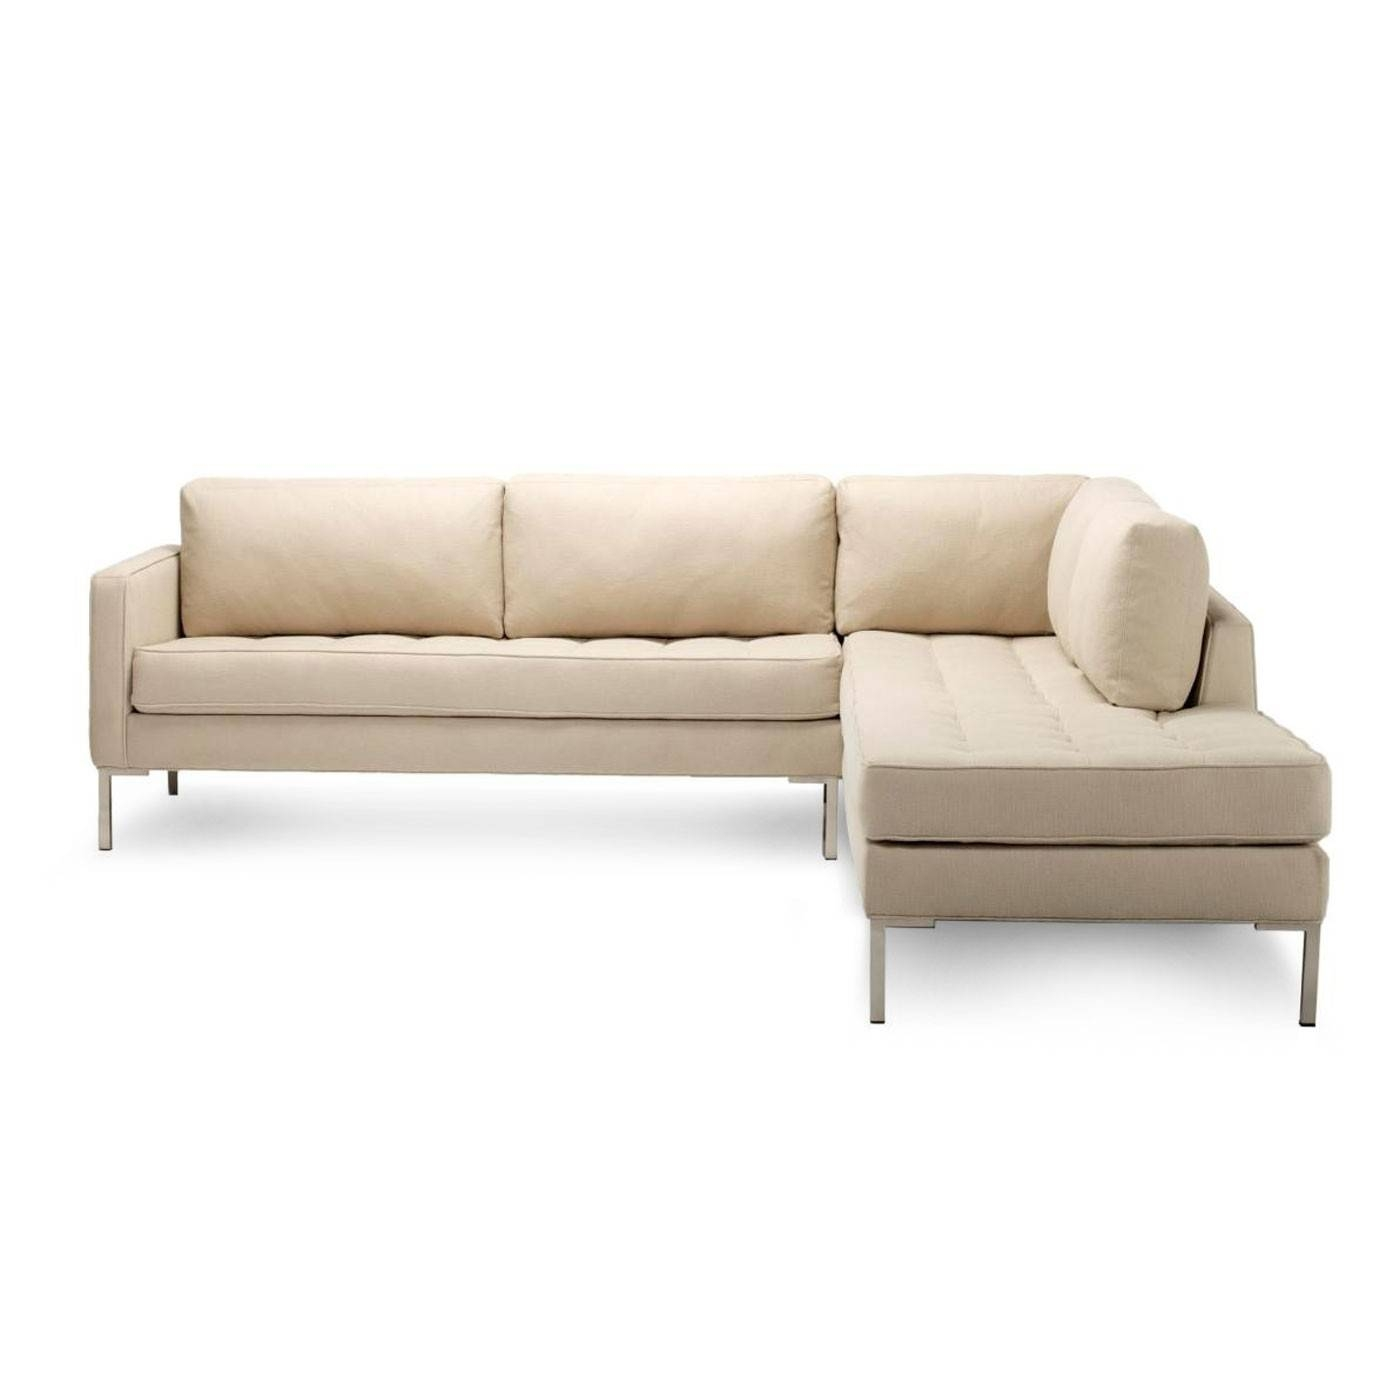 Small Modern Sectional Sofa | Homefurniture with regard to Modern Small Sectional Sofas (Image 11 of 15)